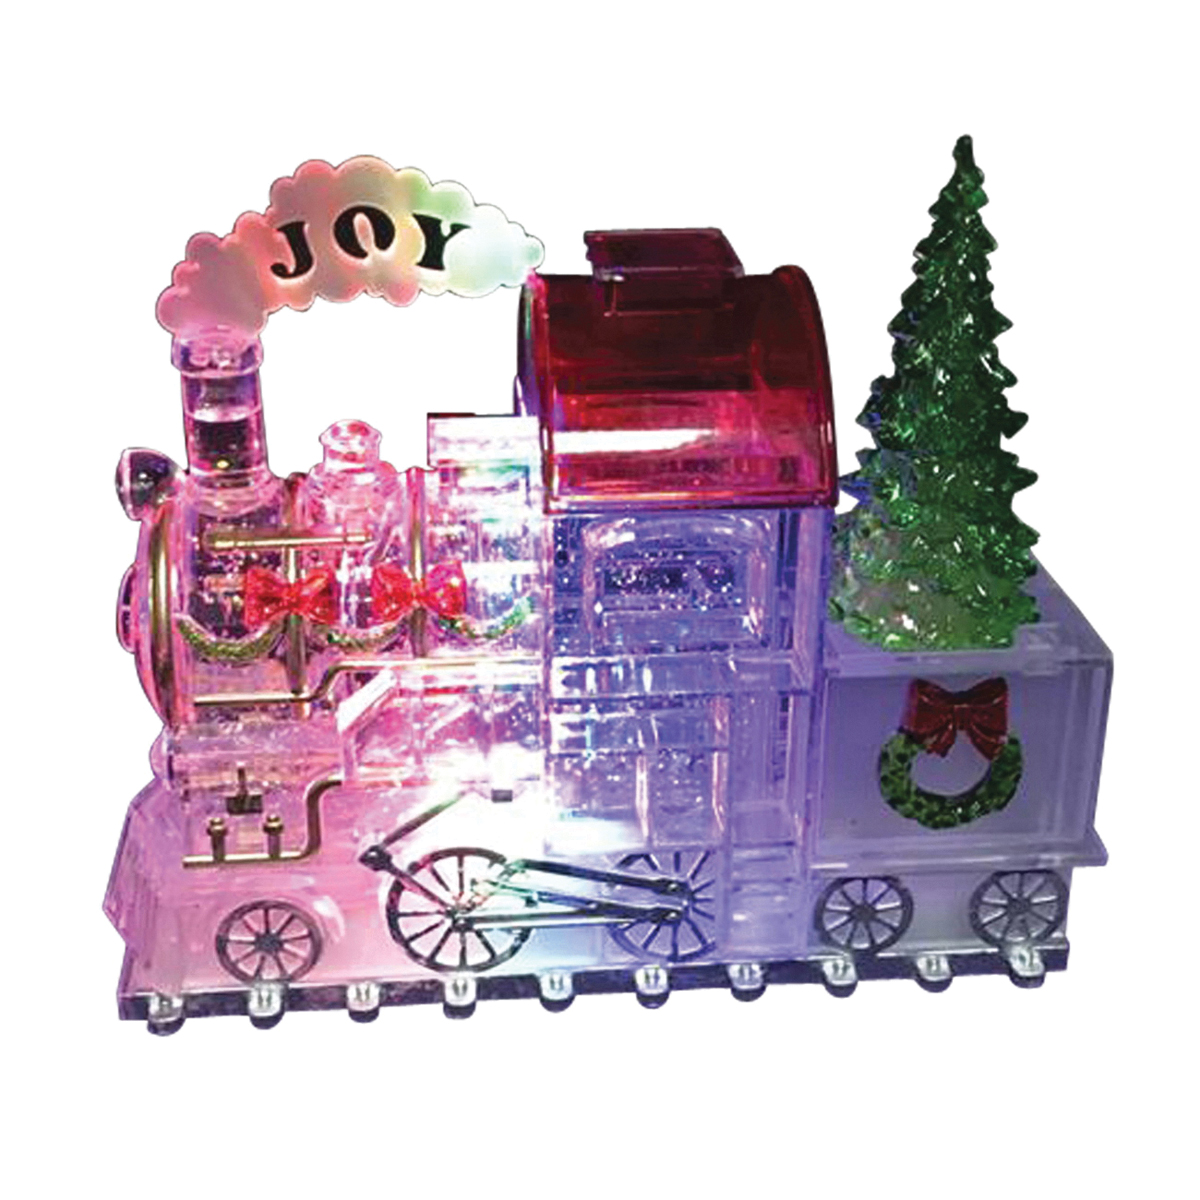 Picture of Santas Forest 21307 Train Ornament, LED Bulb